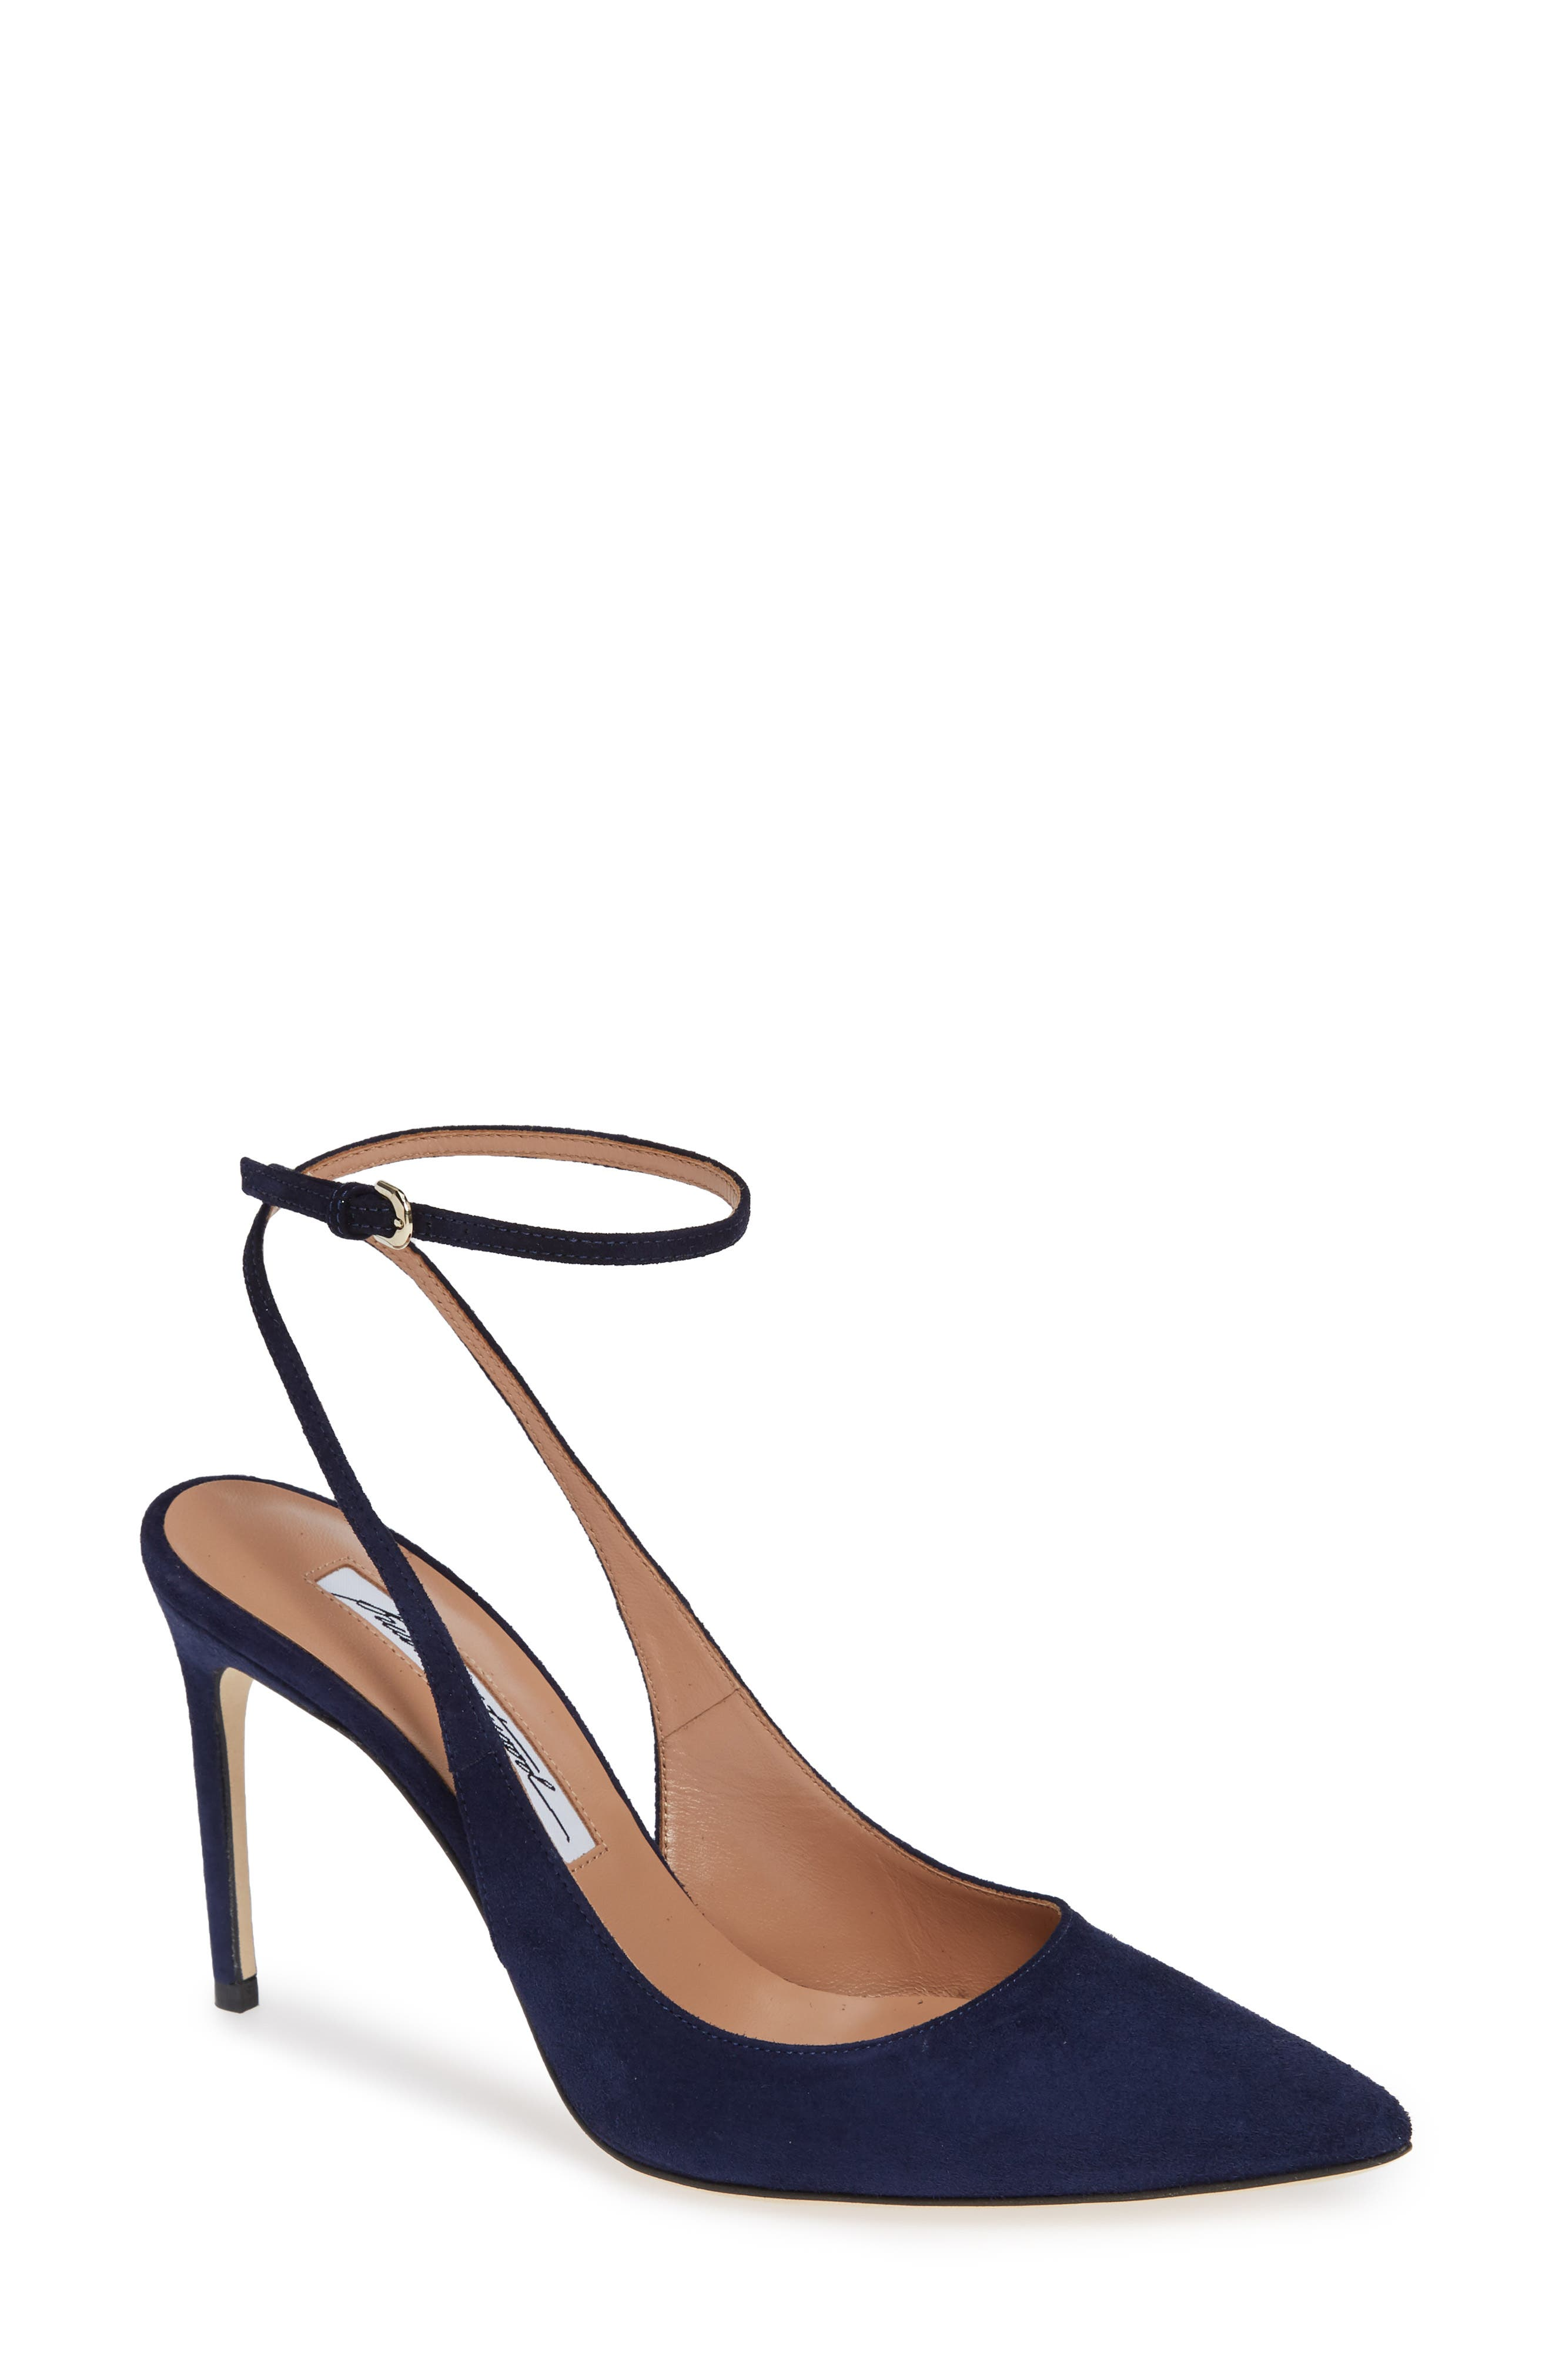 Vicky Wraparound Pump,                             Main thumbnail 1, color,                             Midnight Blue Suede